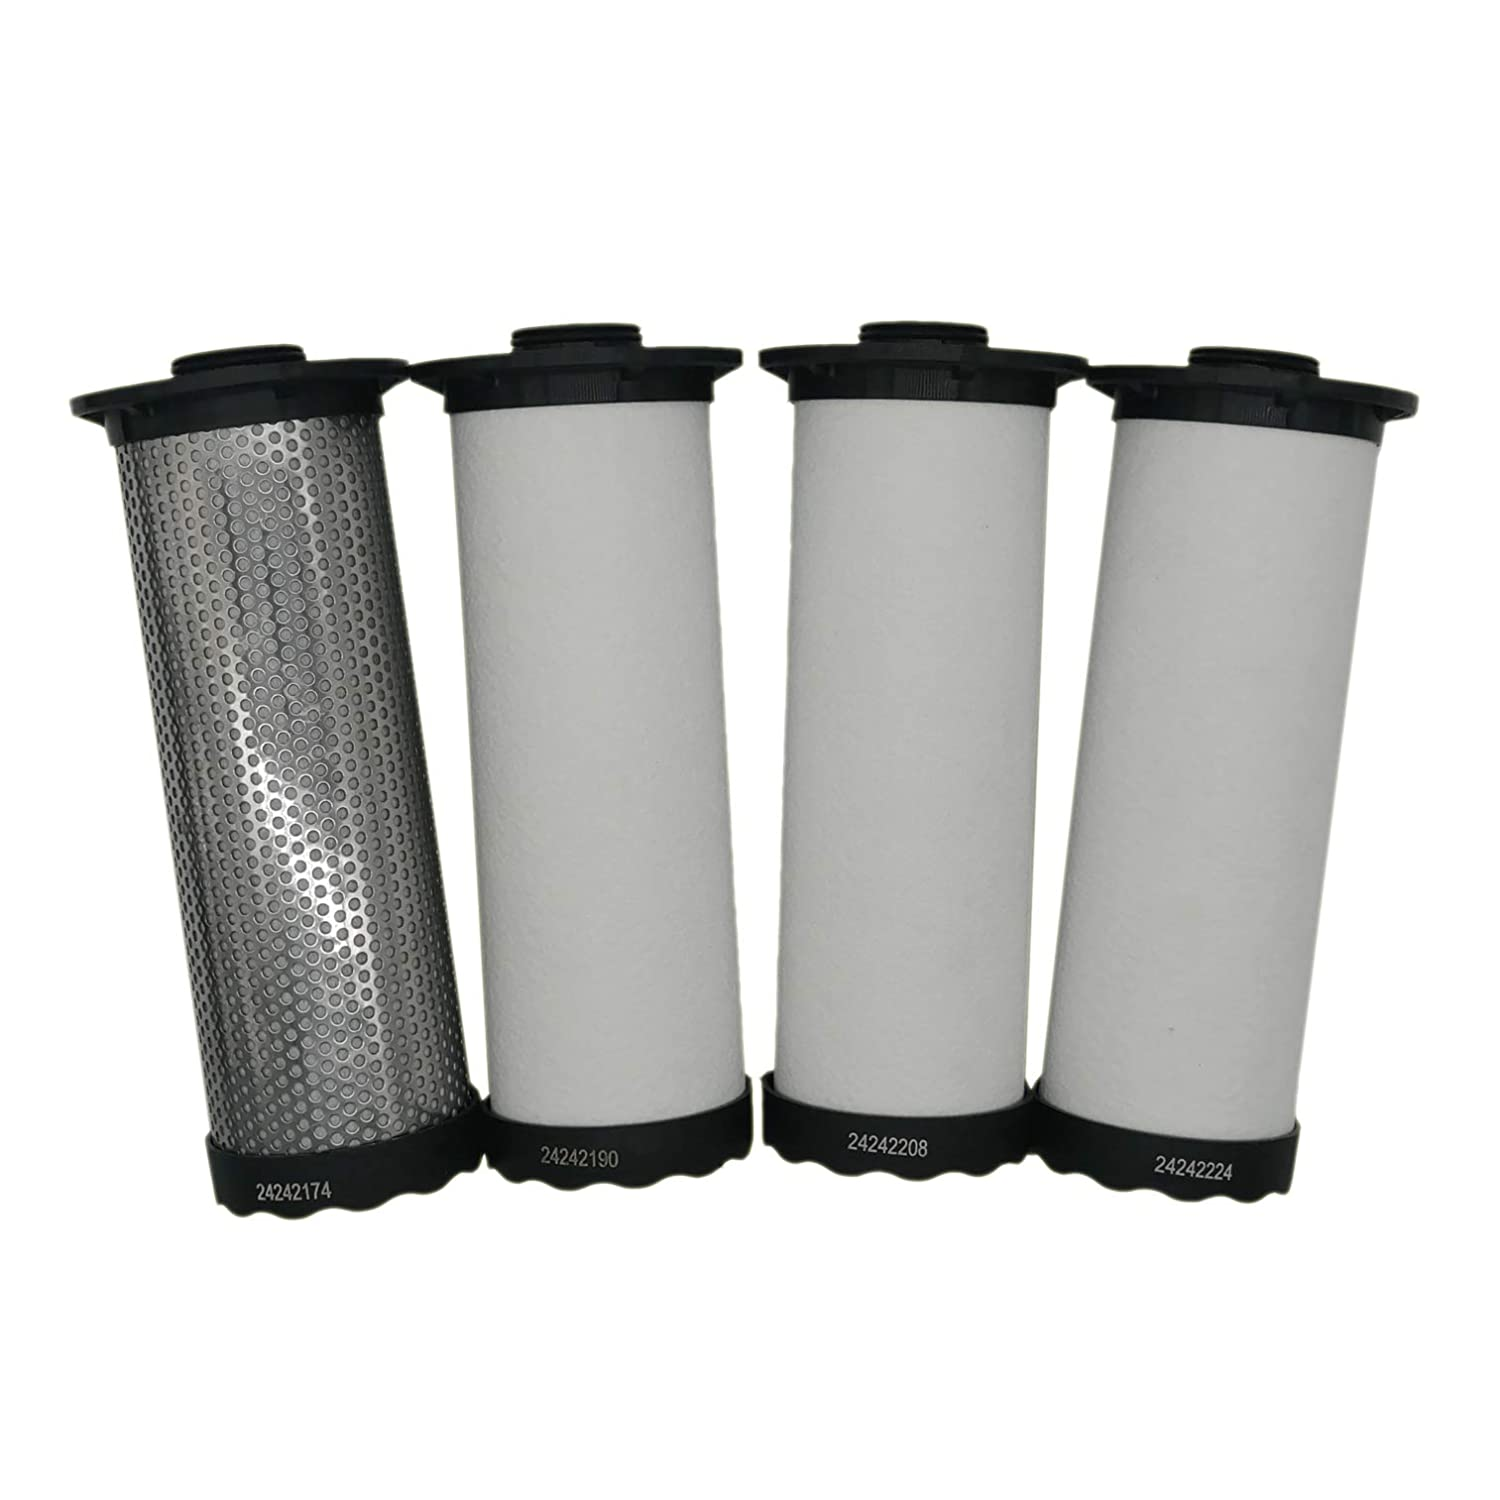 24242224 24242208 24242224 24242174 24242190 XISISUN Replacement Filter for with Ingersoll Rand Air Compressors Replacement Filter